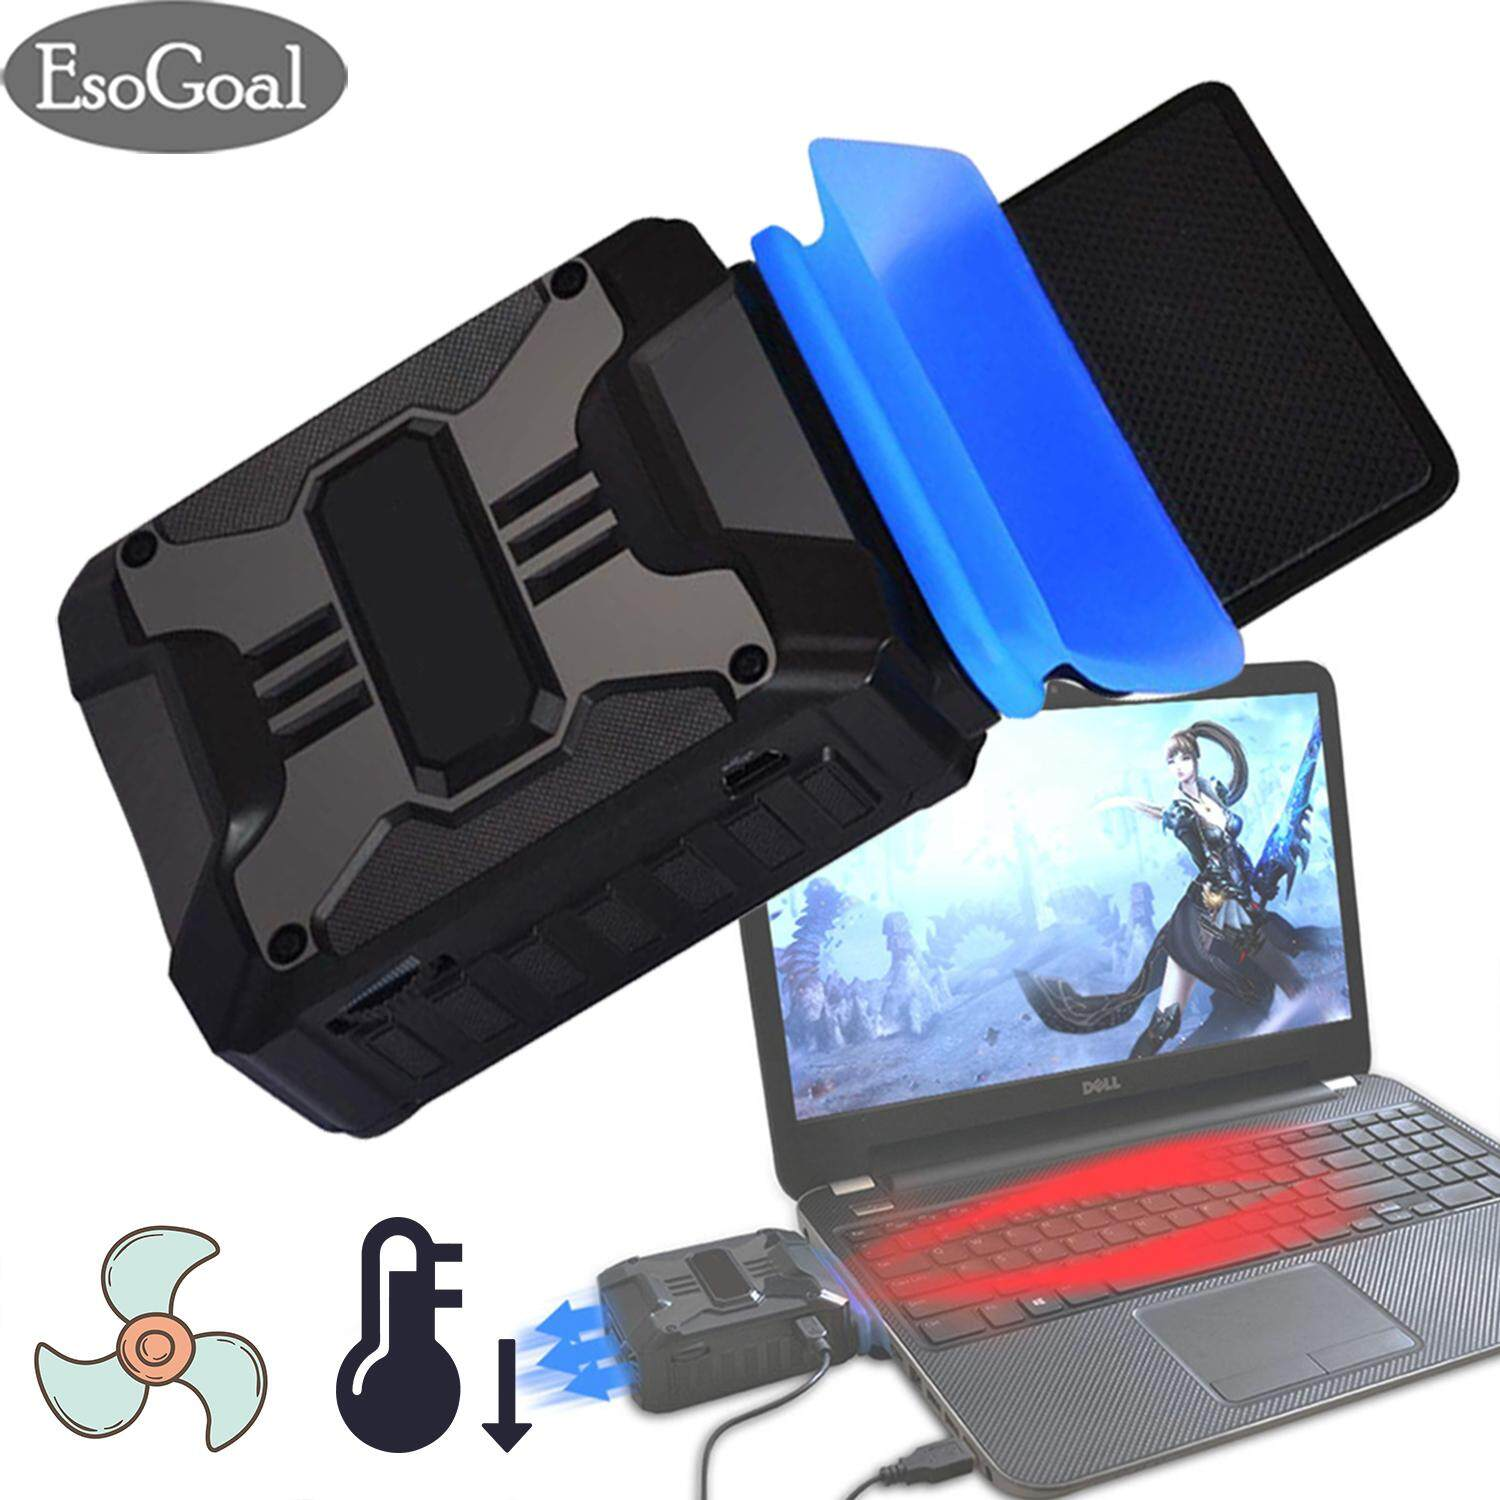 EsoGoal Laptop Cooling Fan Laptop Cooler USB Portable Cooling Fan for Laptop Cooler Stand Laptop Vacuum Cooler Laptop Air Cooler for Notebook Laptop Malaysia